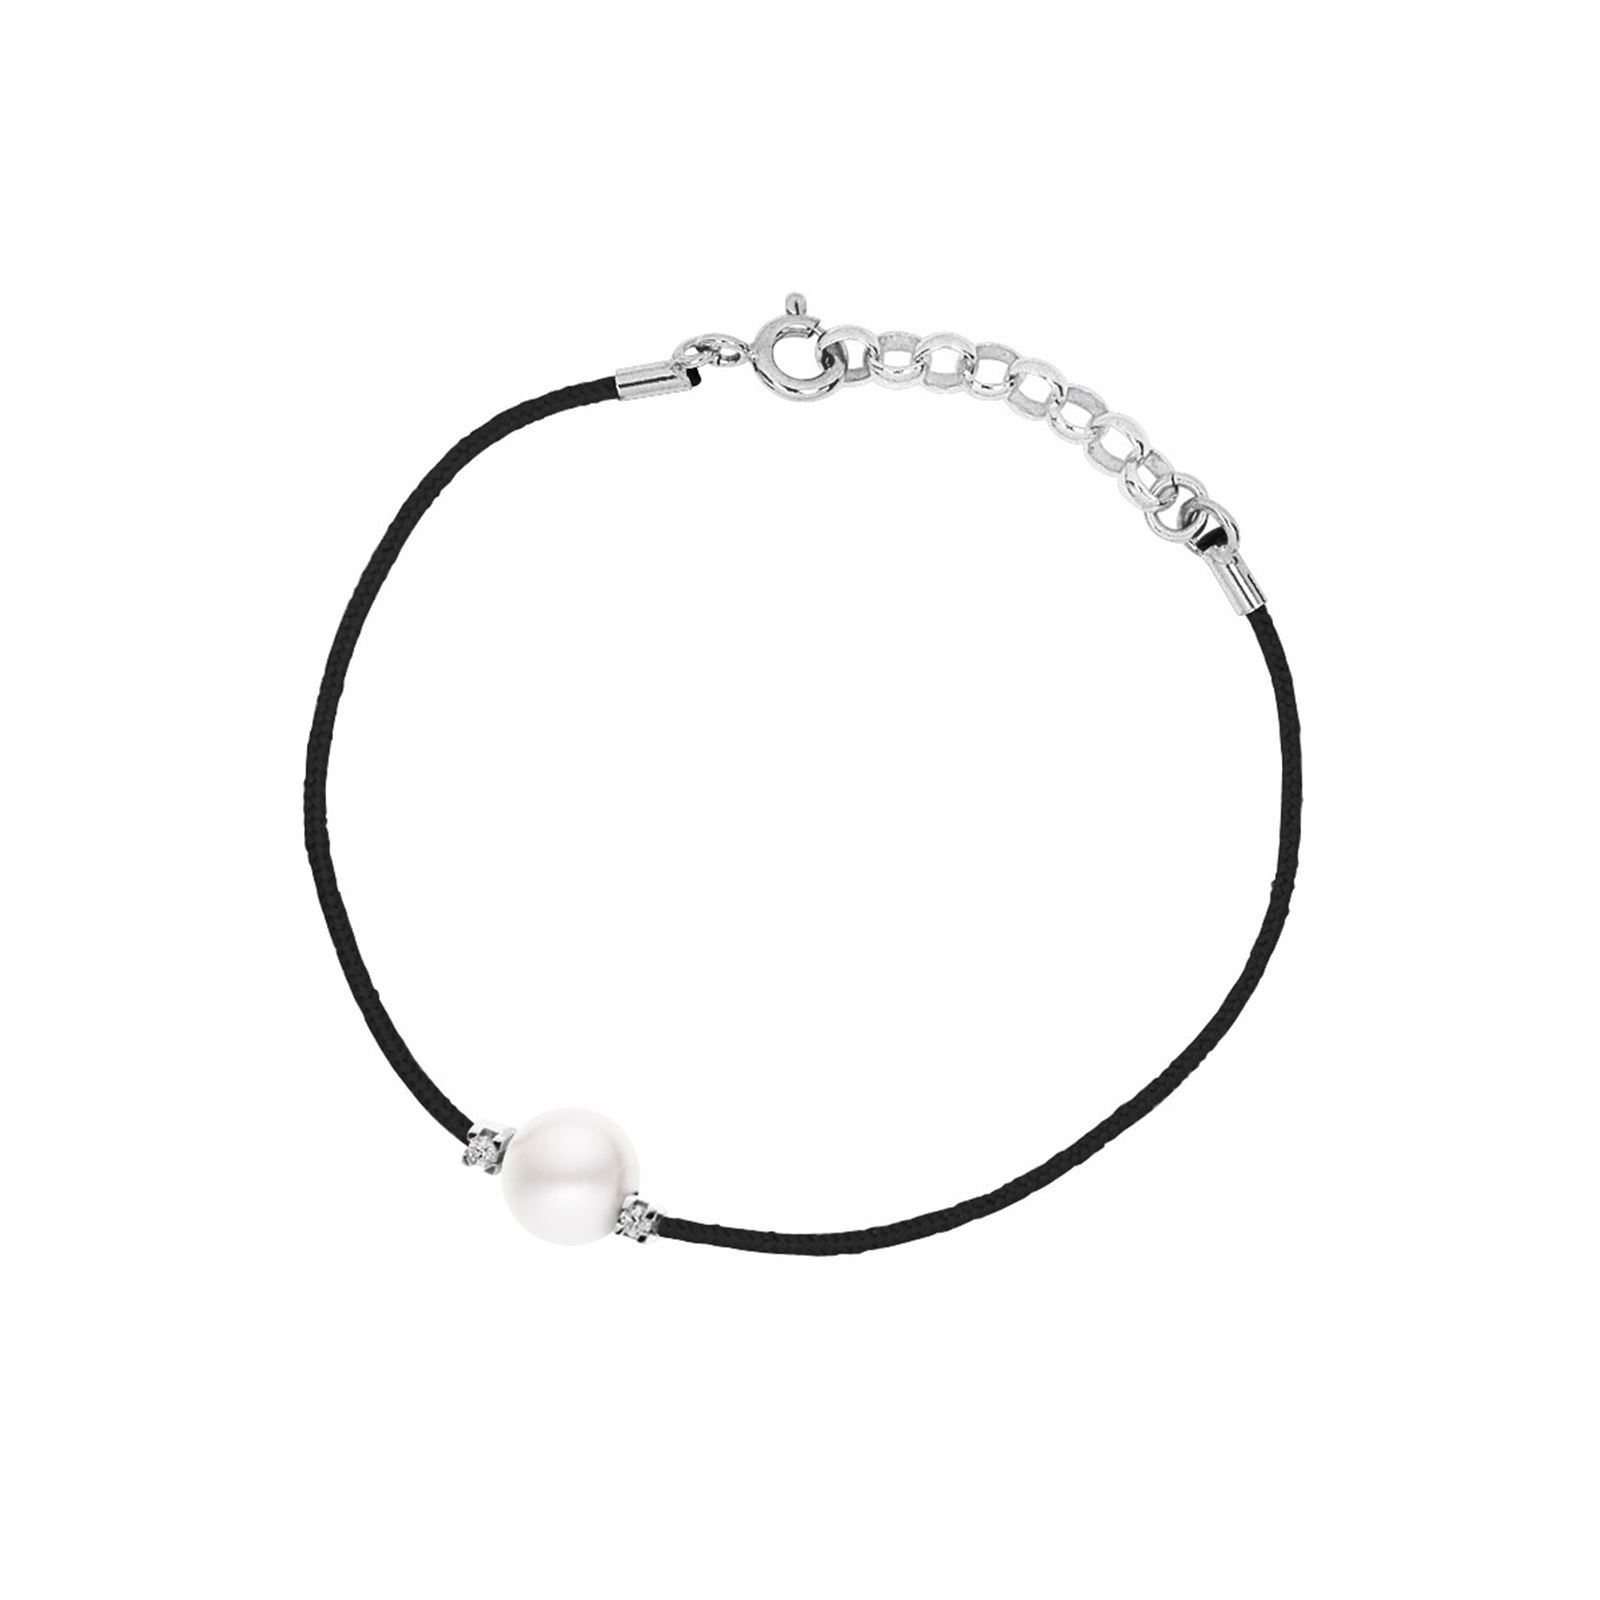 Carré Montaigne Bracelet en argent avec diamants et perle - noir - Carré Montaigne - Bracelet  Bracelet cordon  2 pierres  Type de pierre : diamant  Type de perle : perle d'eau douce, perle de culture  Couleur perle : blanc  Taille perle : 8-9 mm  Poids diamants blancs : 0,03 carats  Fermoir mousqueton  Co...